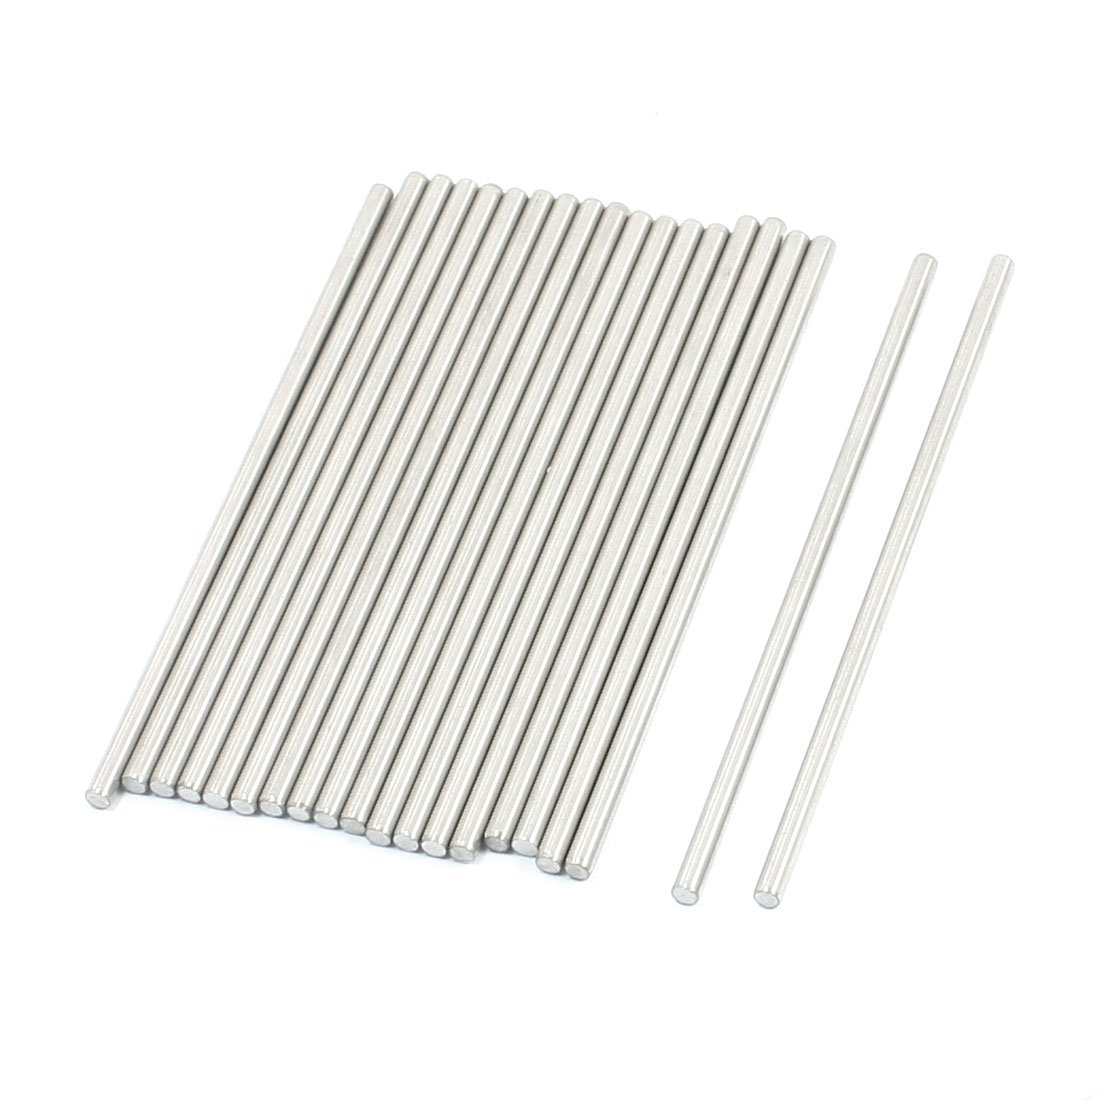 uxcell 20Pcs RC Toy Car Model Part Stainless Steel Round Rod Axle 3mmx90mm a14061800ux0213